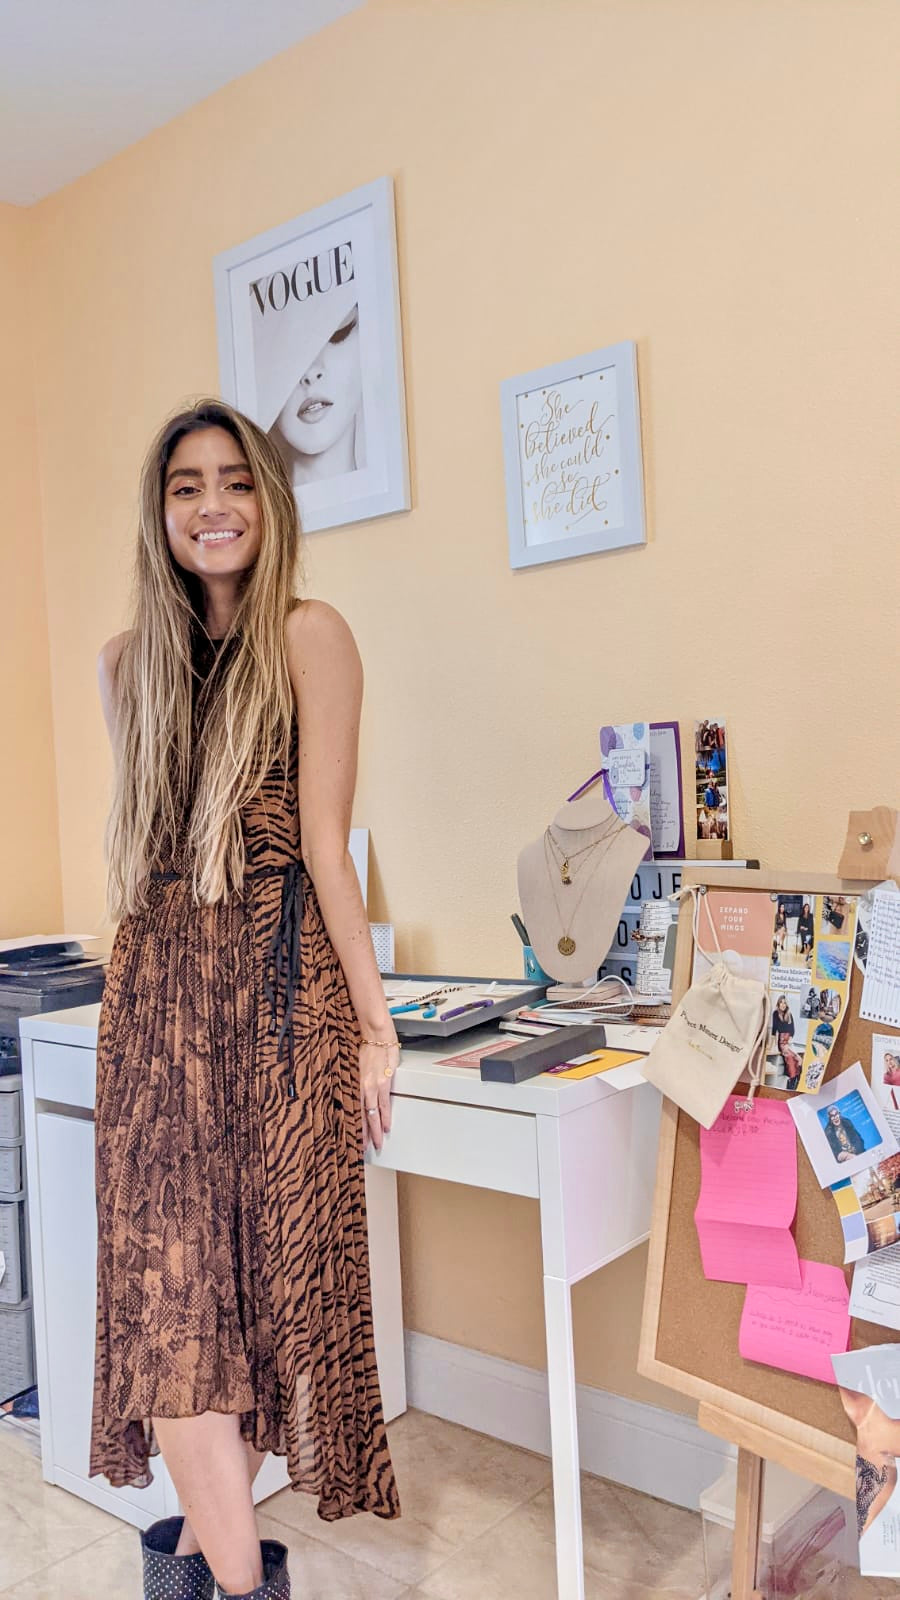 learn more about our female founder and handmade jewelry brand mission